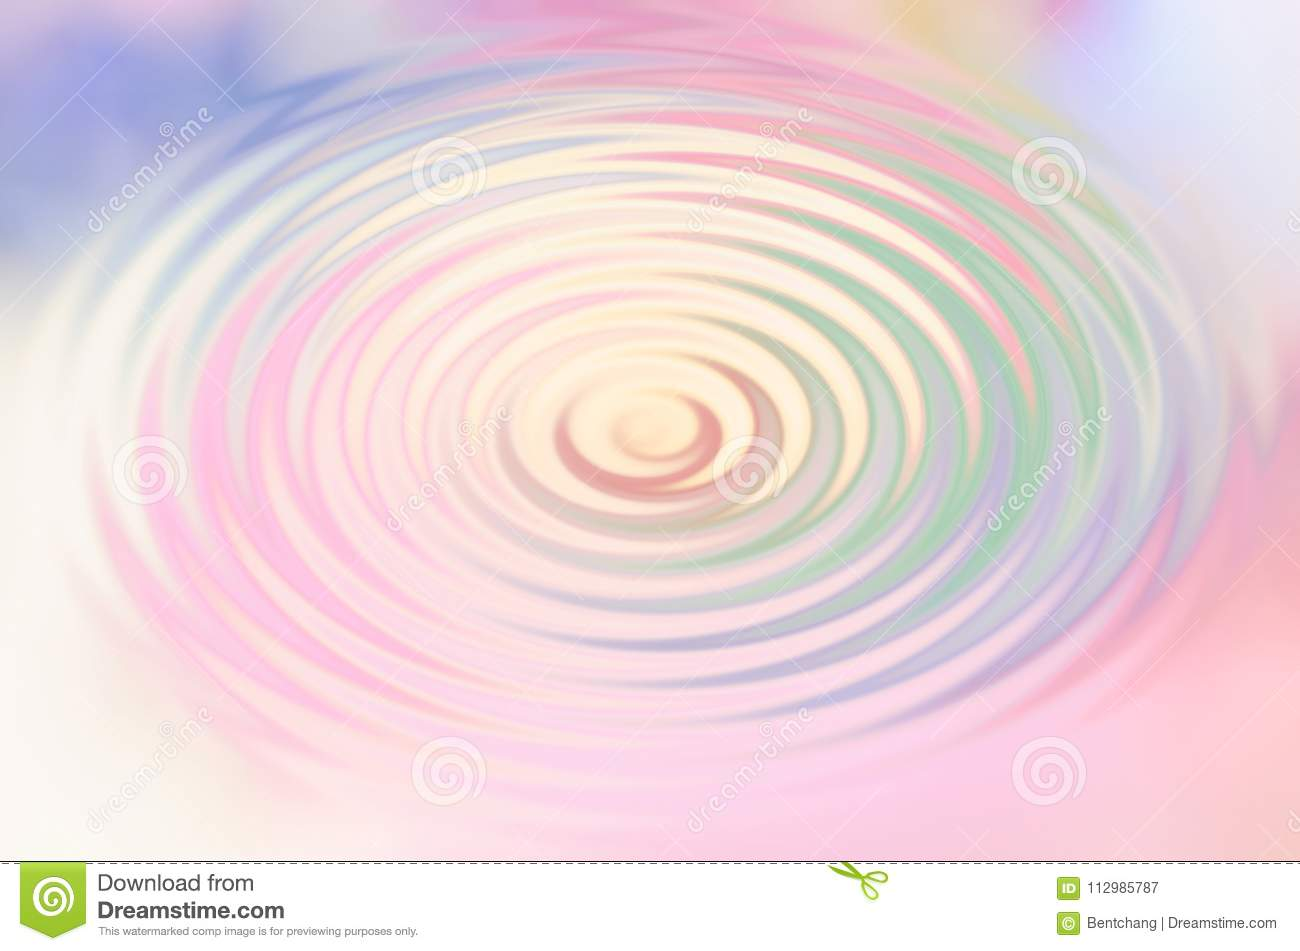 Abstract motion, for web page, wallpaper or graphic design. Blur, yellow, dreamy, colorful & macro.